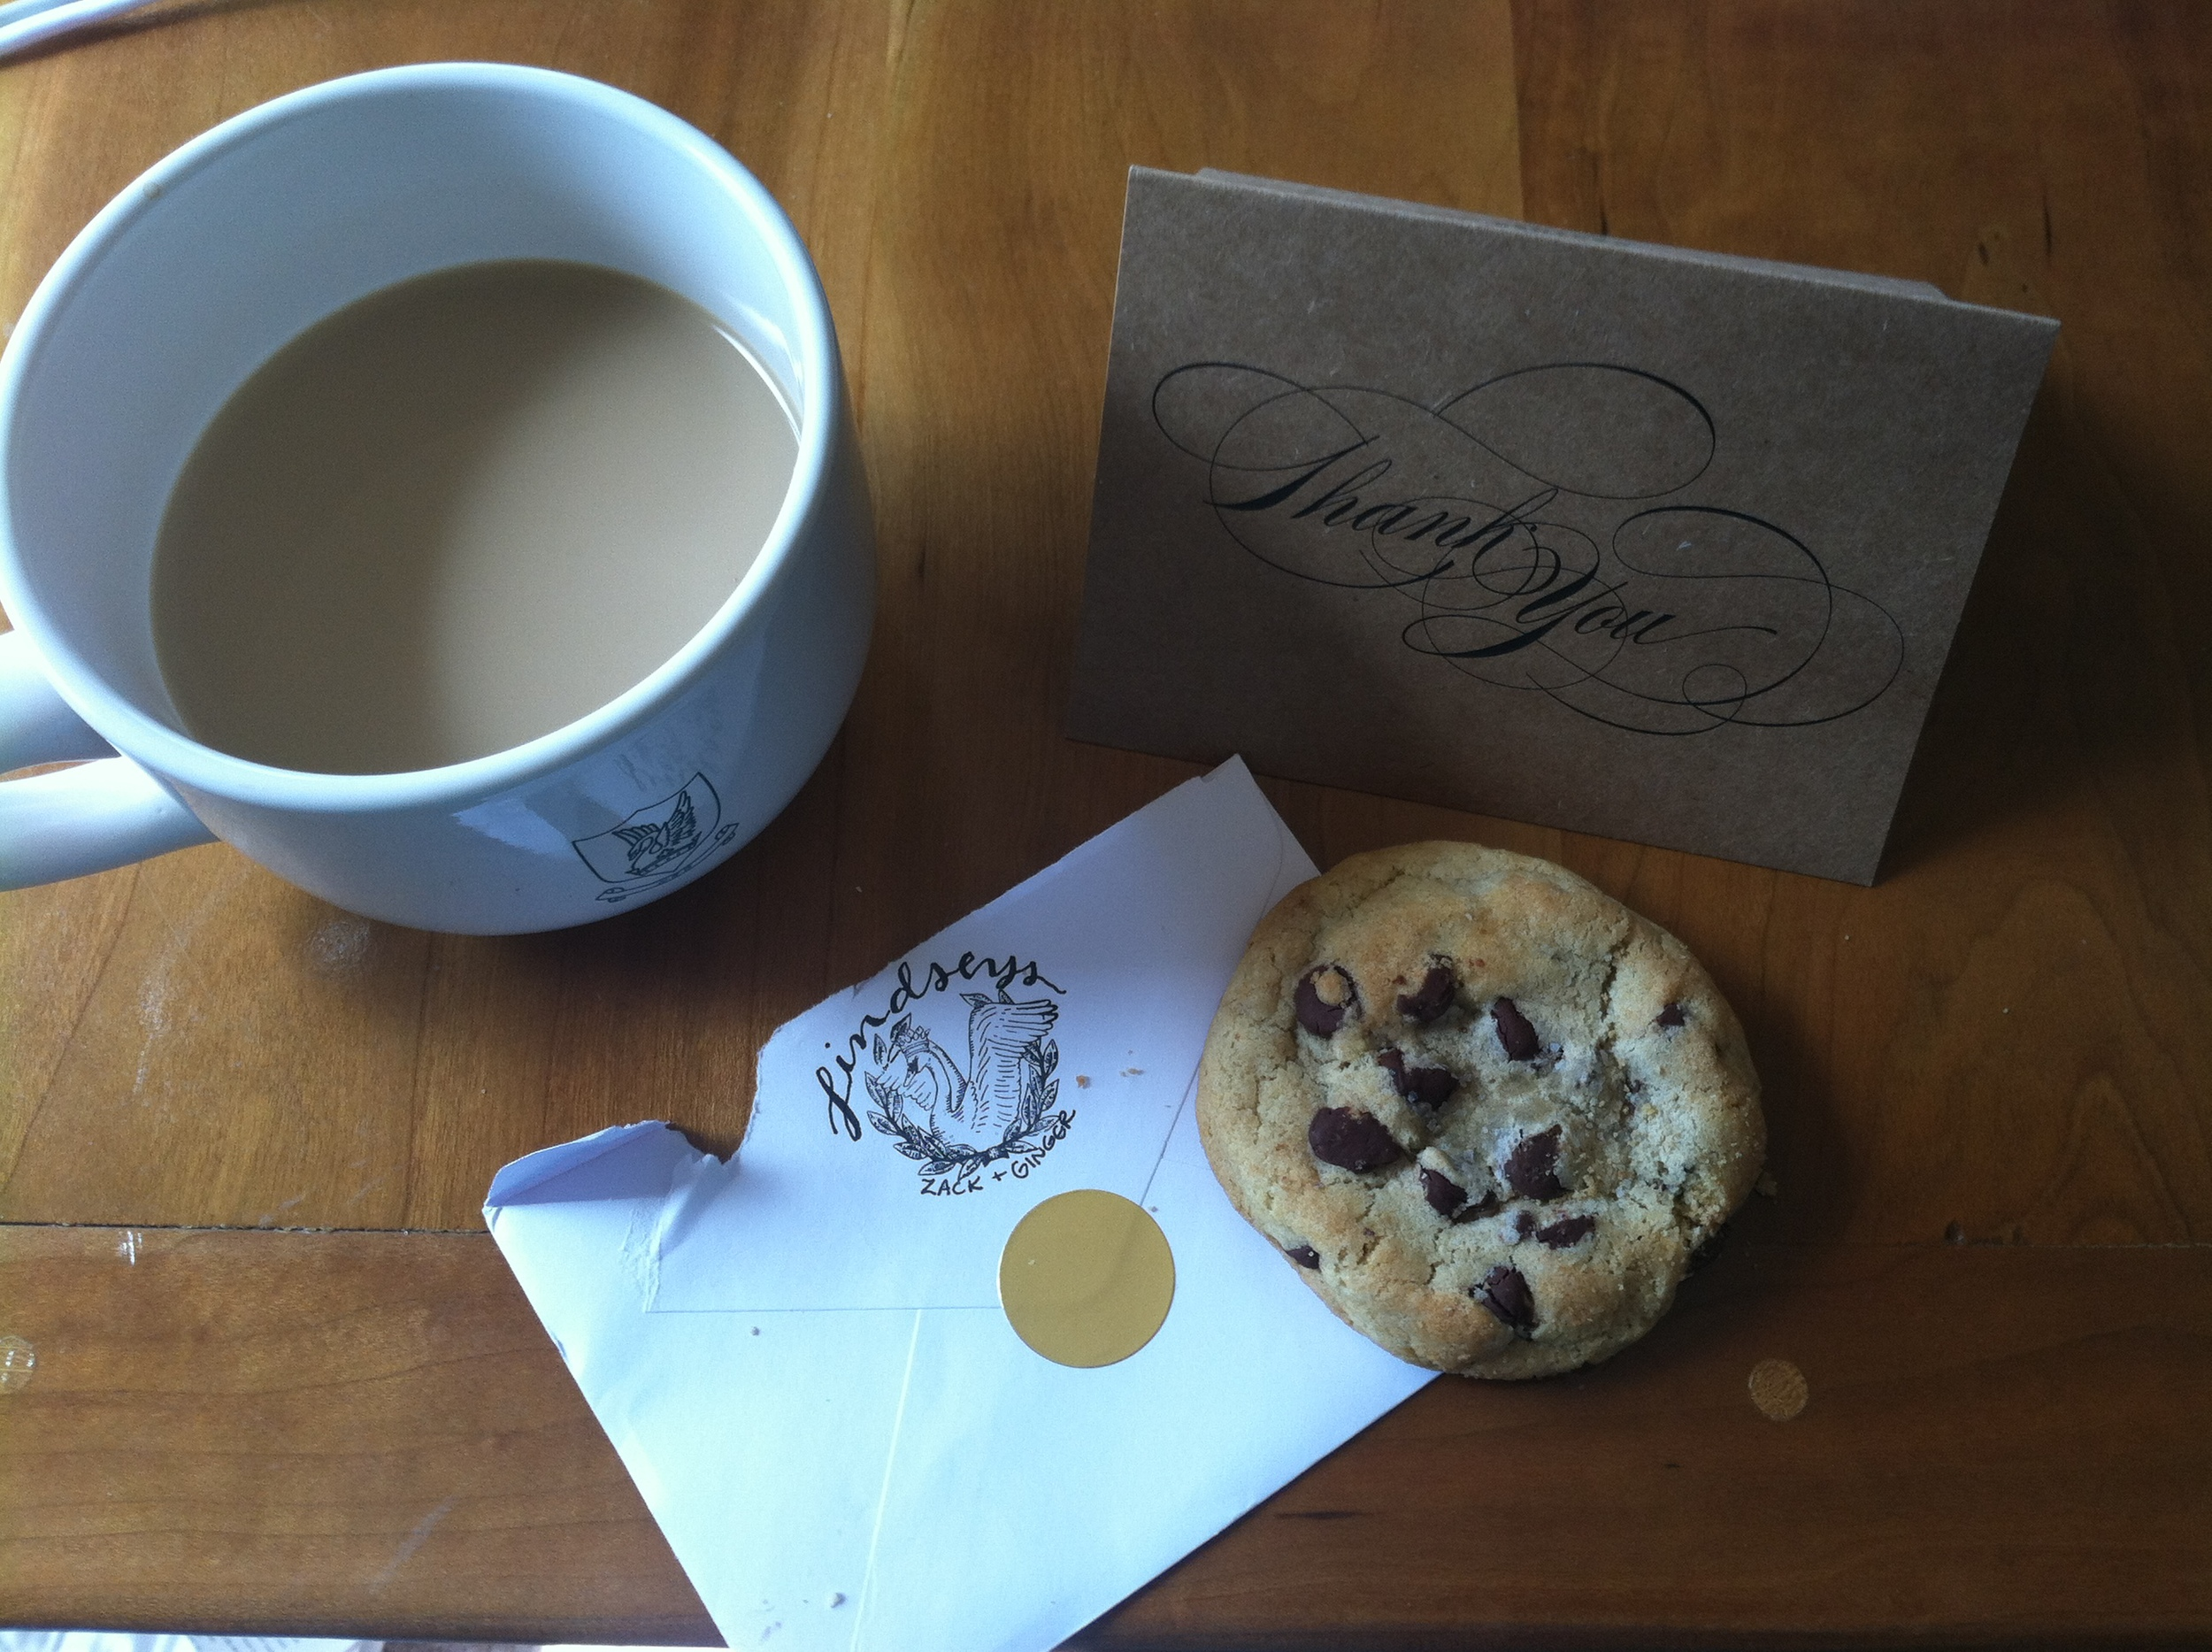 Got the sweetest thank-you note + homemade cookies from past October bride, Ginger!